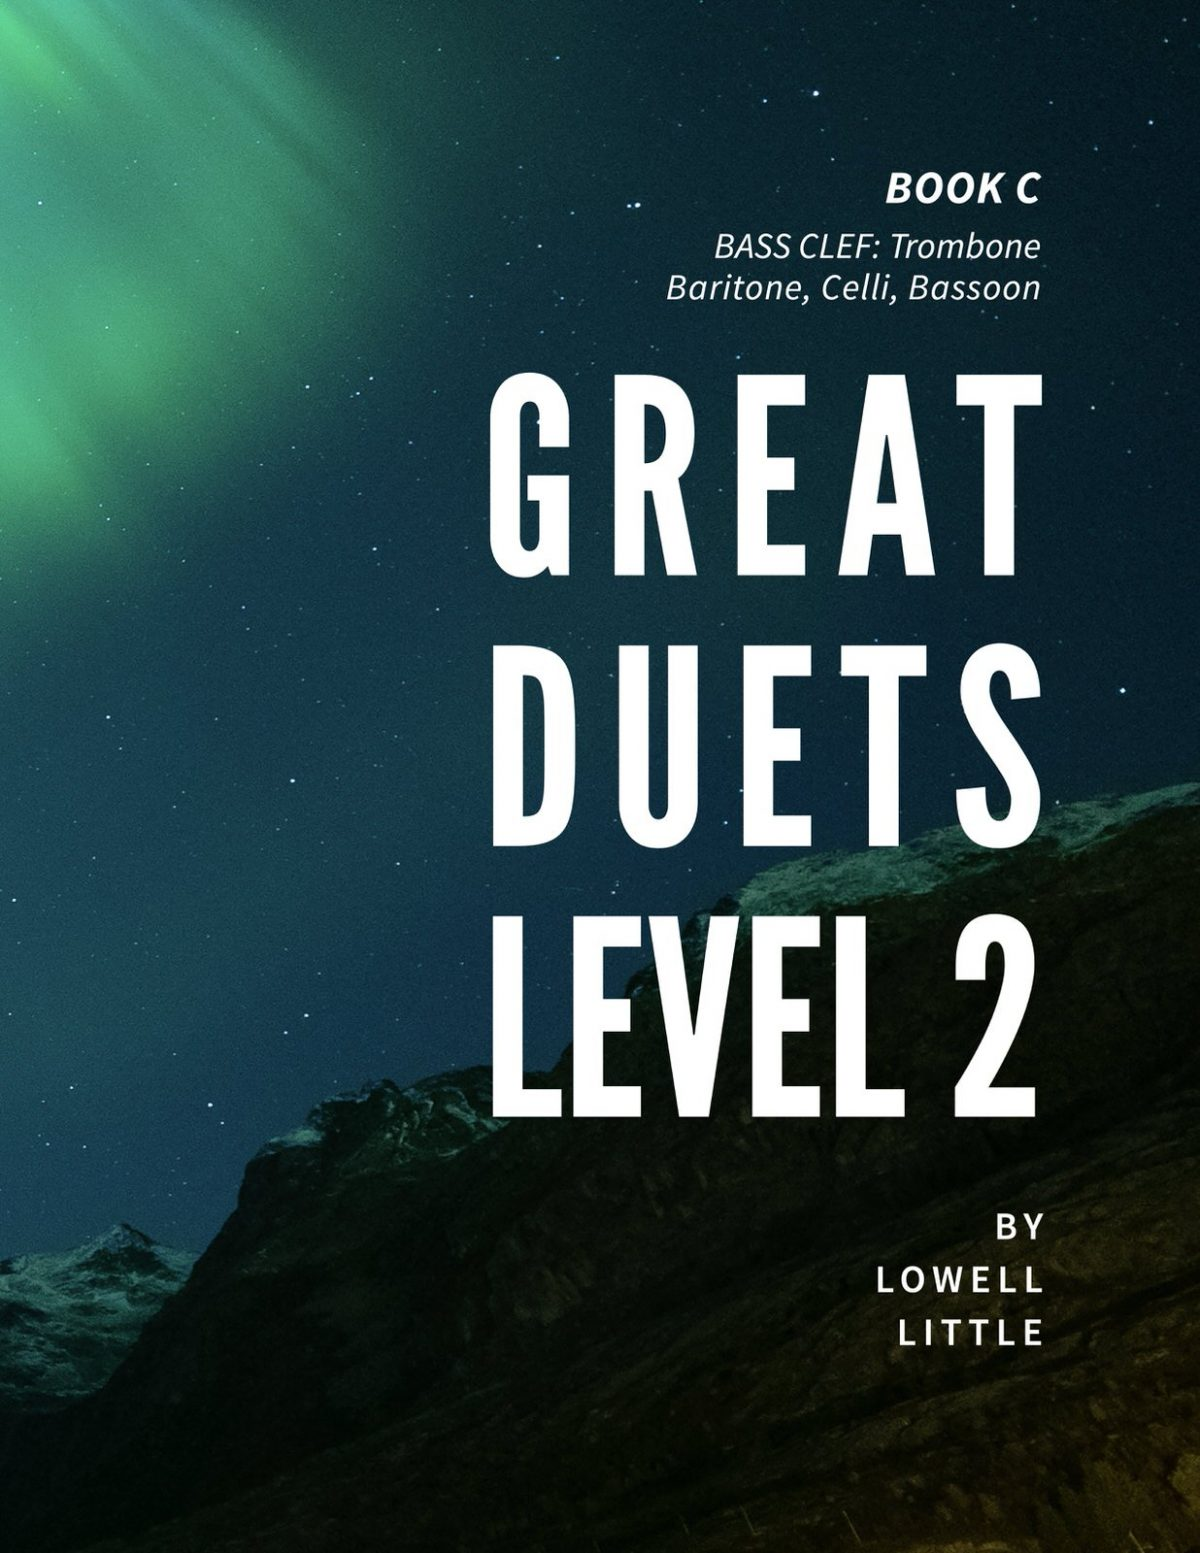 Little, Great Duets Level 2 Book C-p01